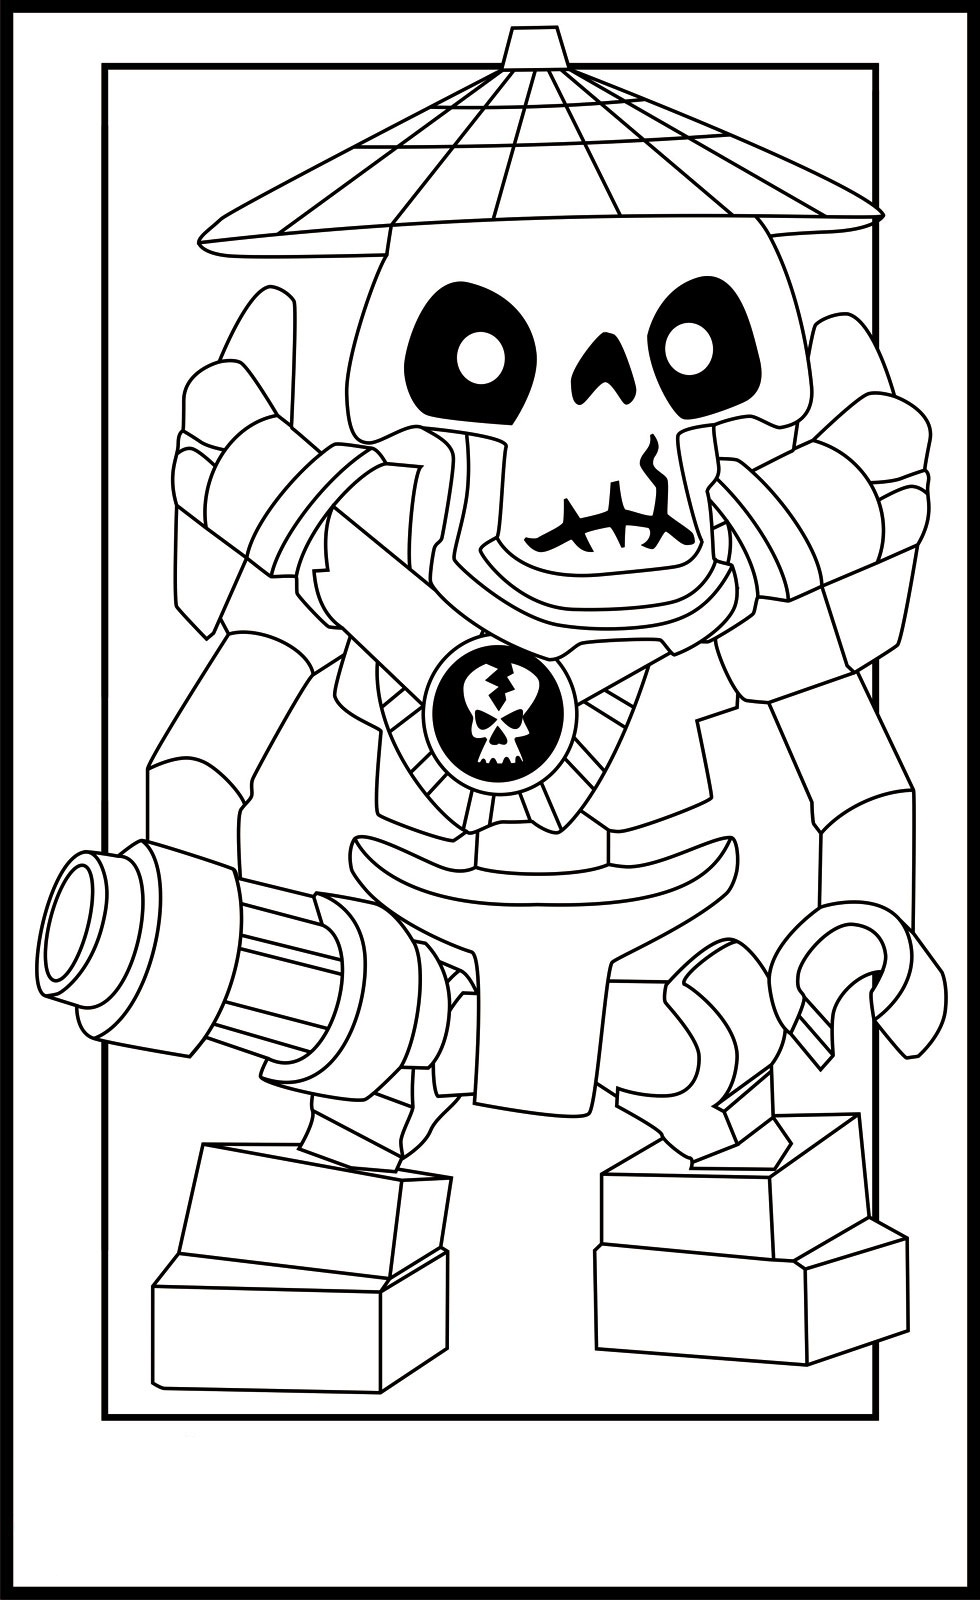 Perfect Printable Lego Ninjago Coloring Pages Ideas - Coloring Paper ...